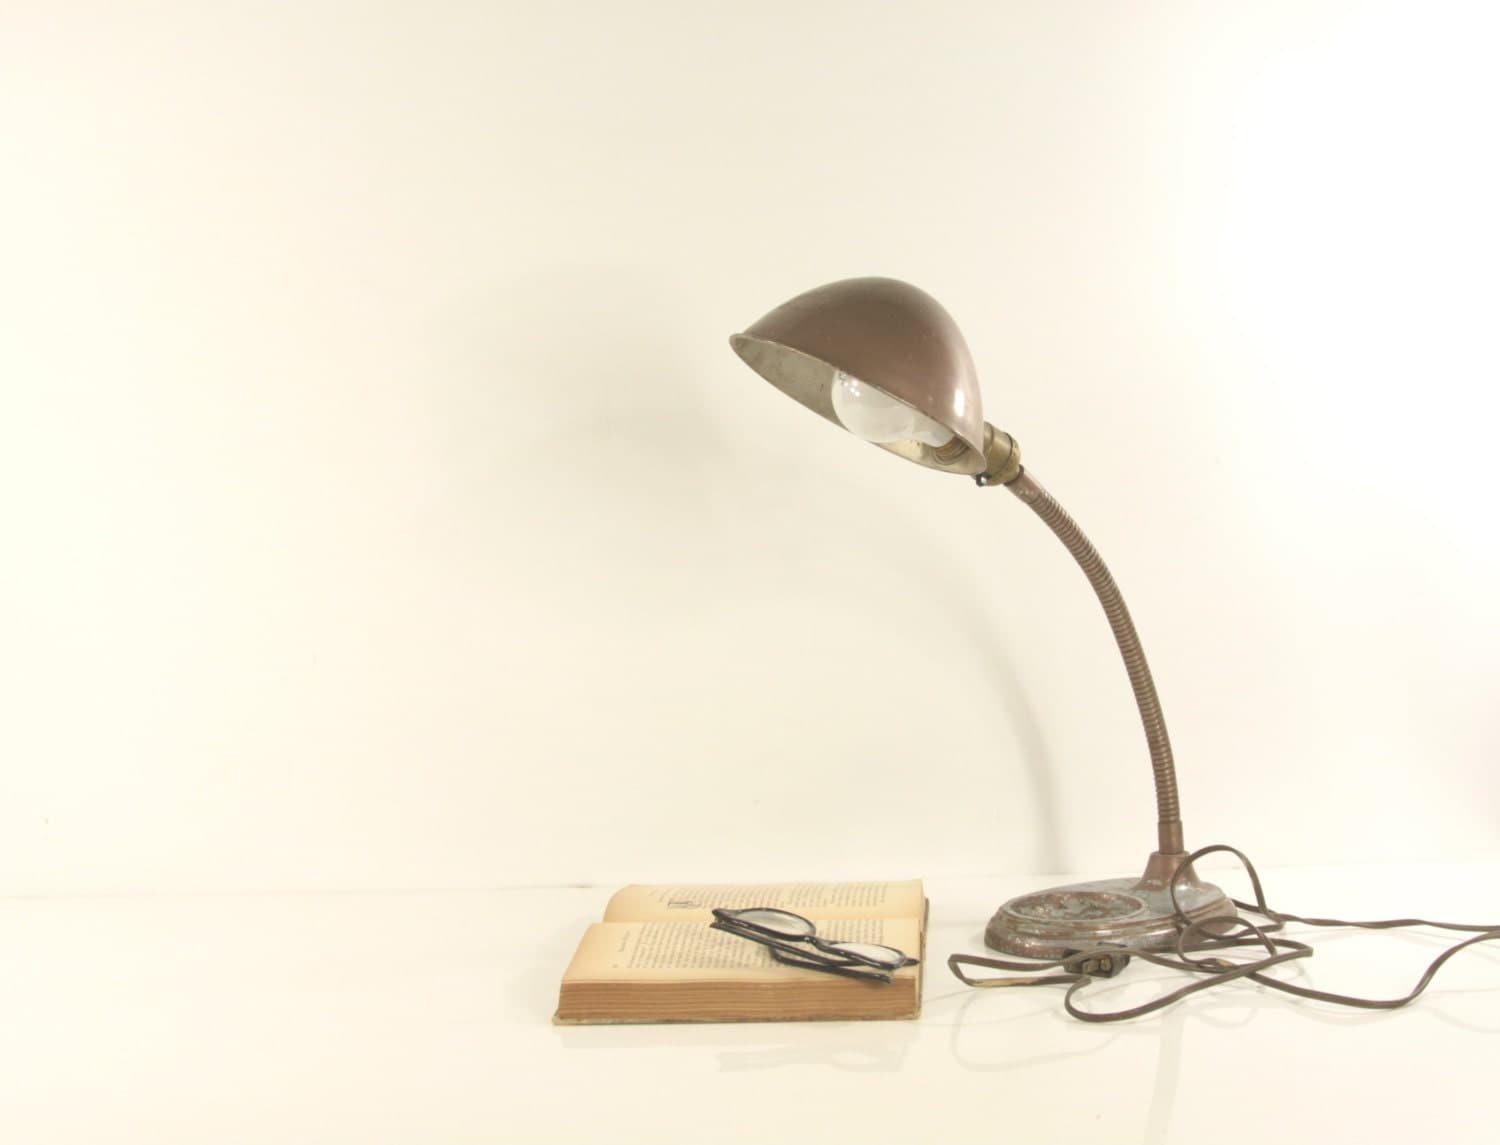 Vintage art deco gooseneck lamp clamp